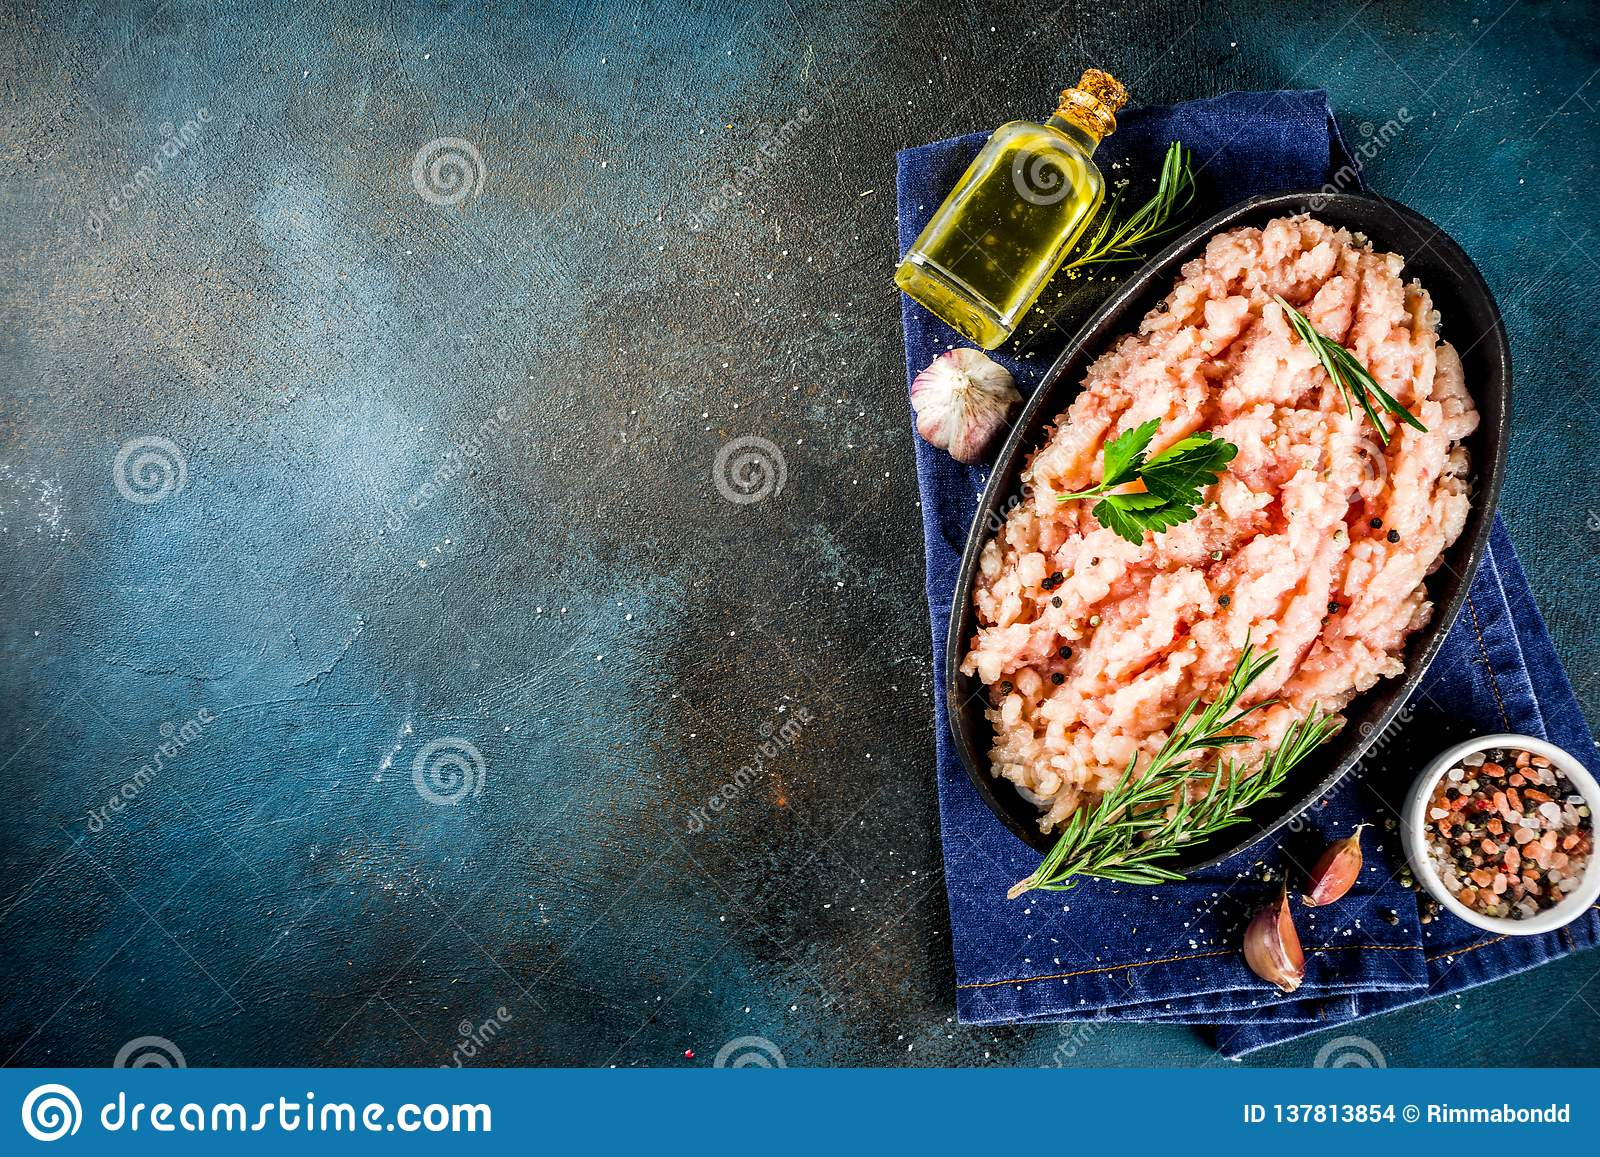 Homemade minced chicken meat